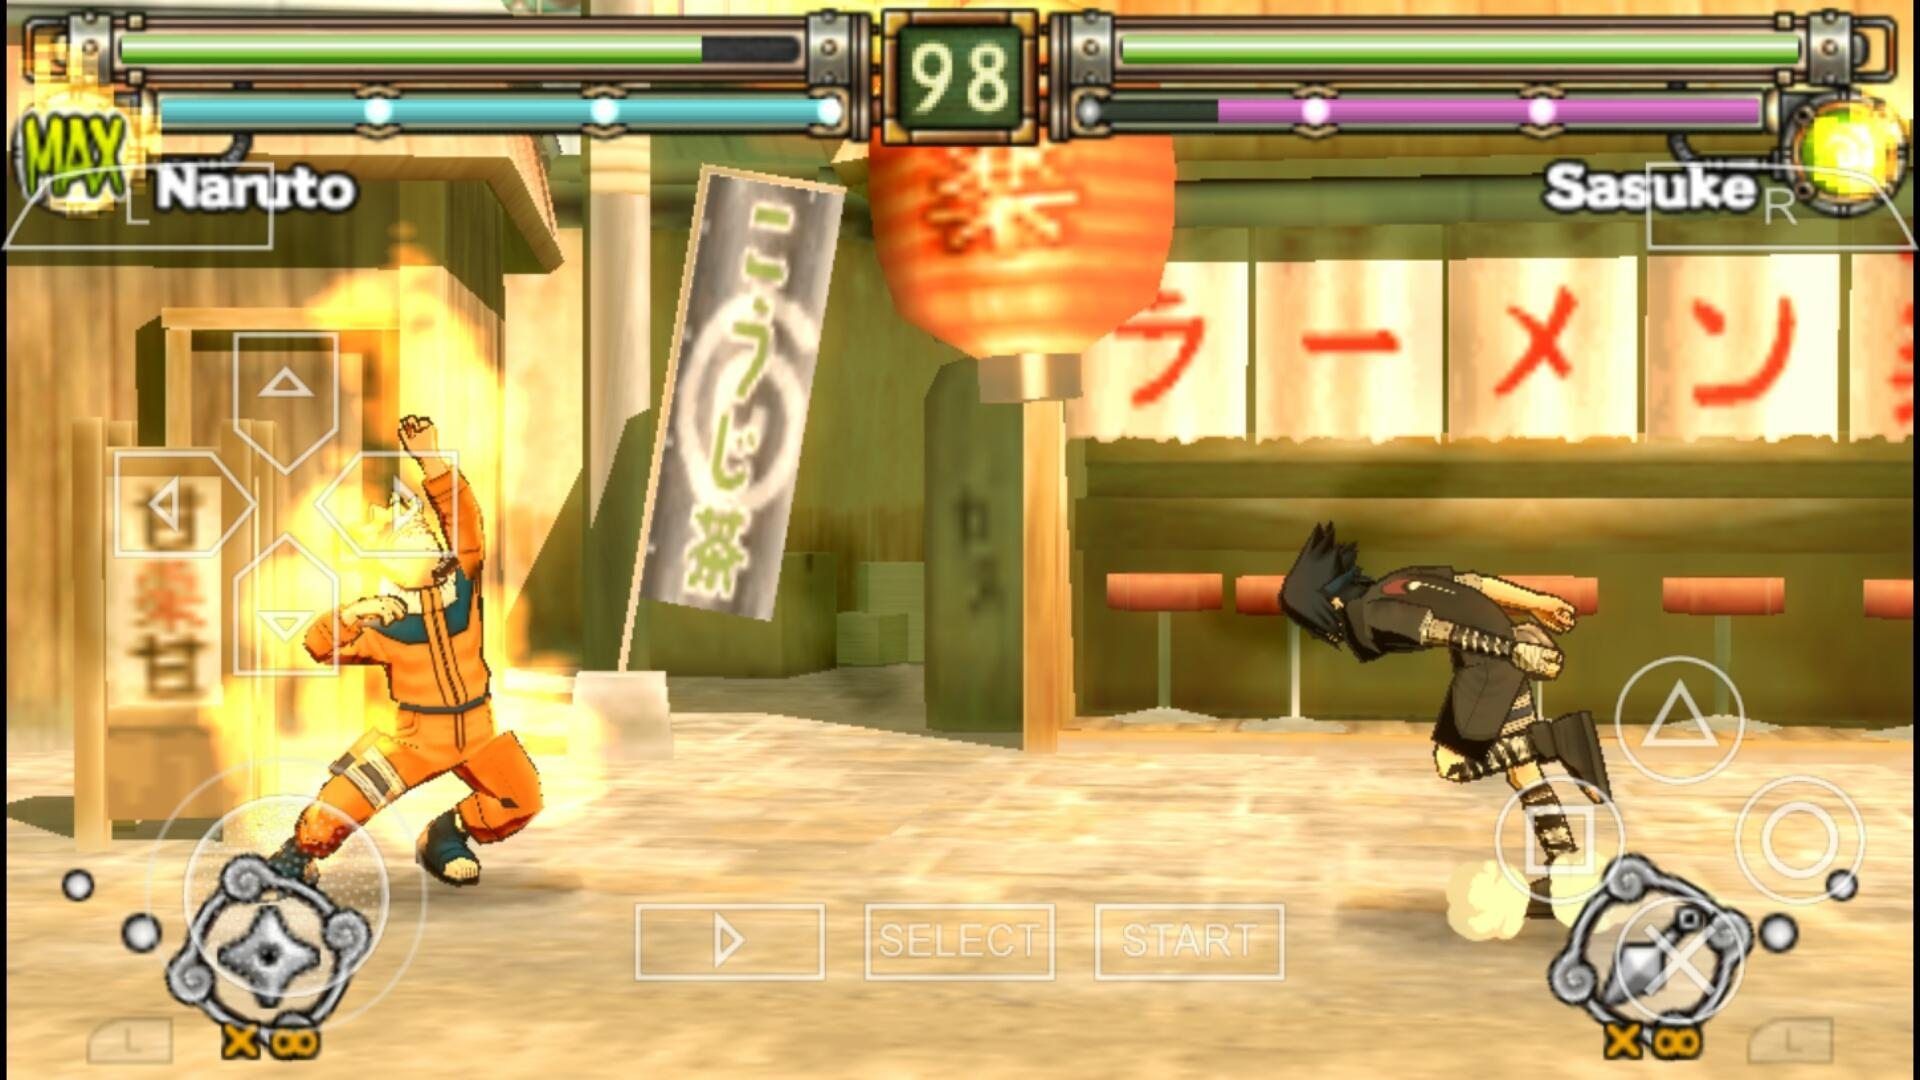 Naruto Ultimate Ninja Shippuden Storm 4 Heroes for Android - APK